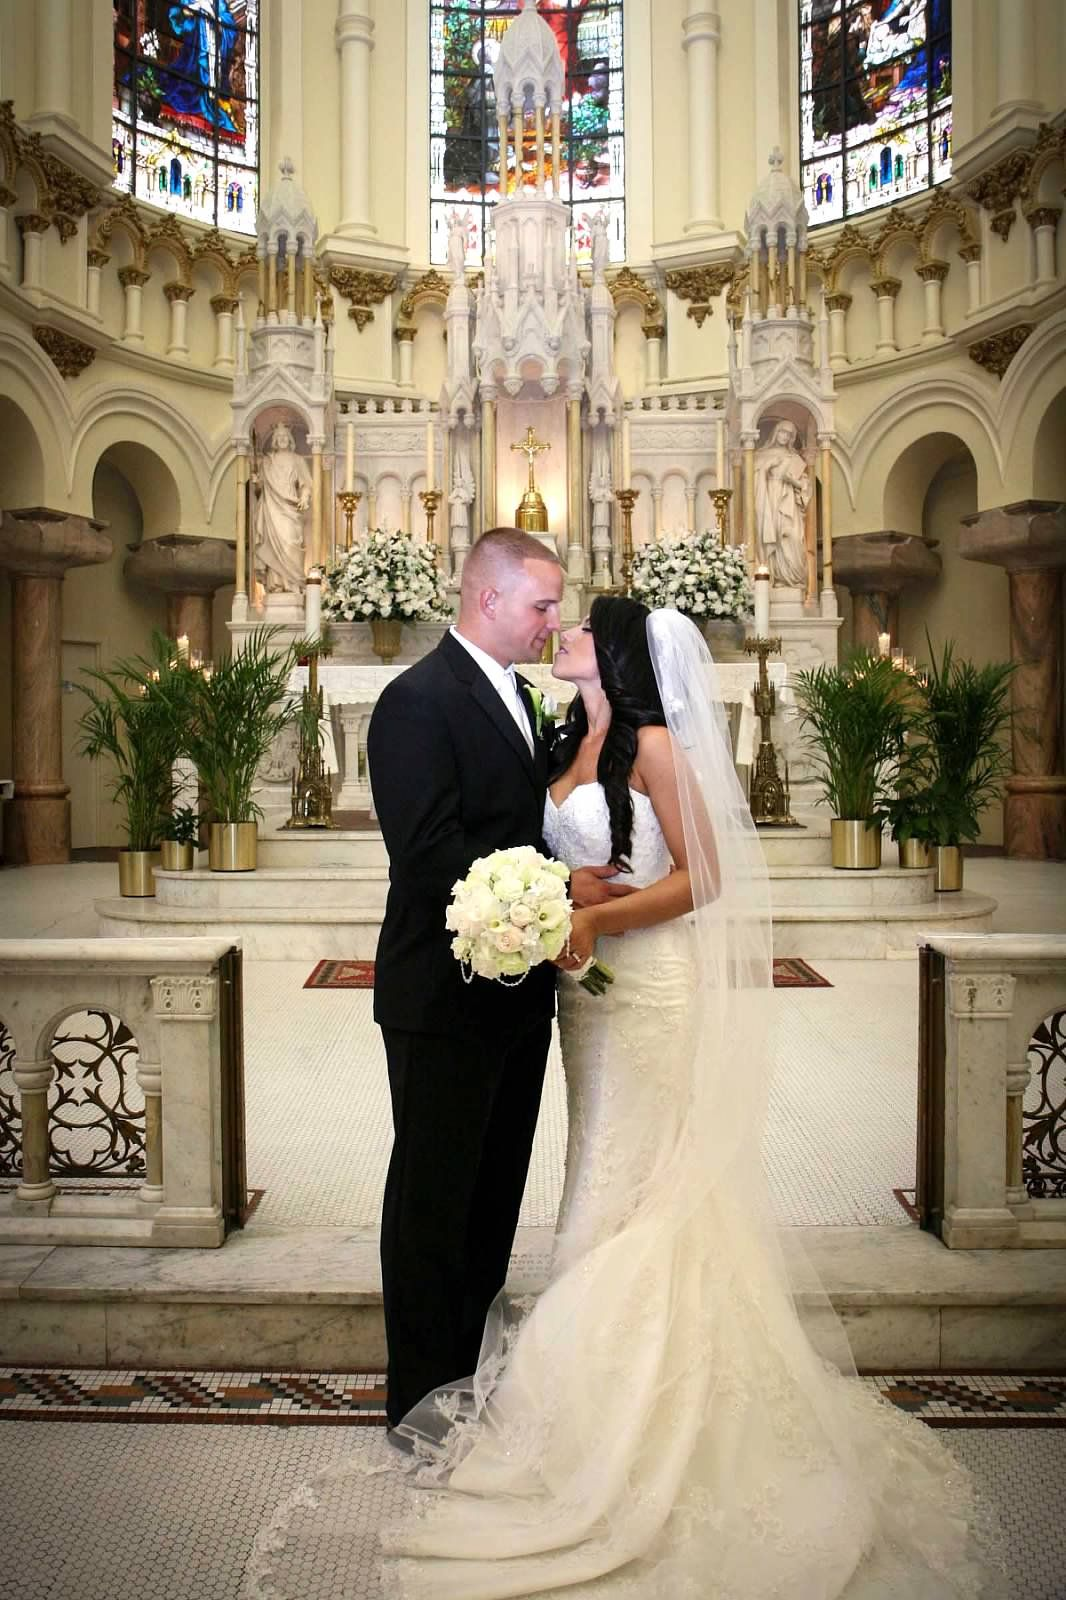 Catholic Wedding in a Vintage Church | I DID!!! | Wedding ...